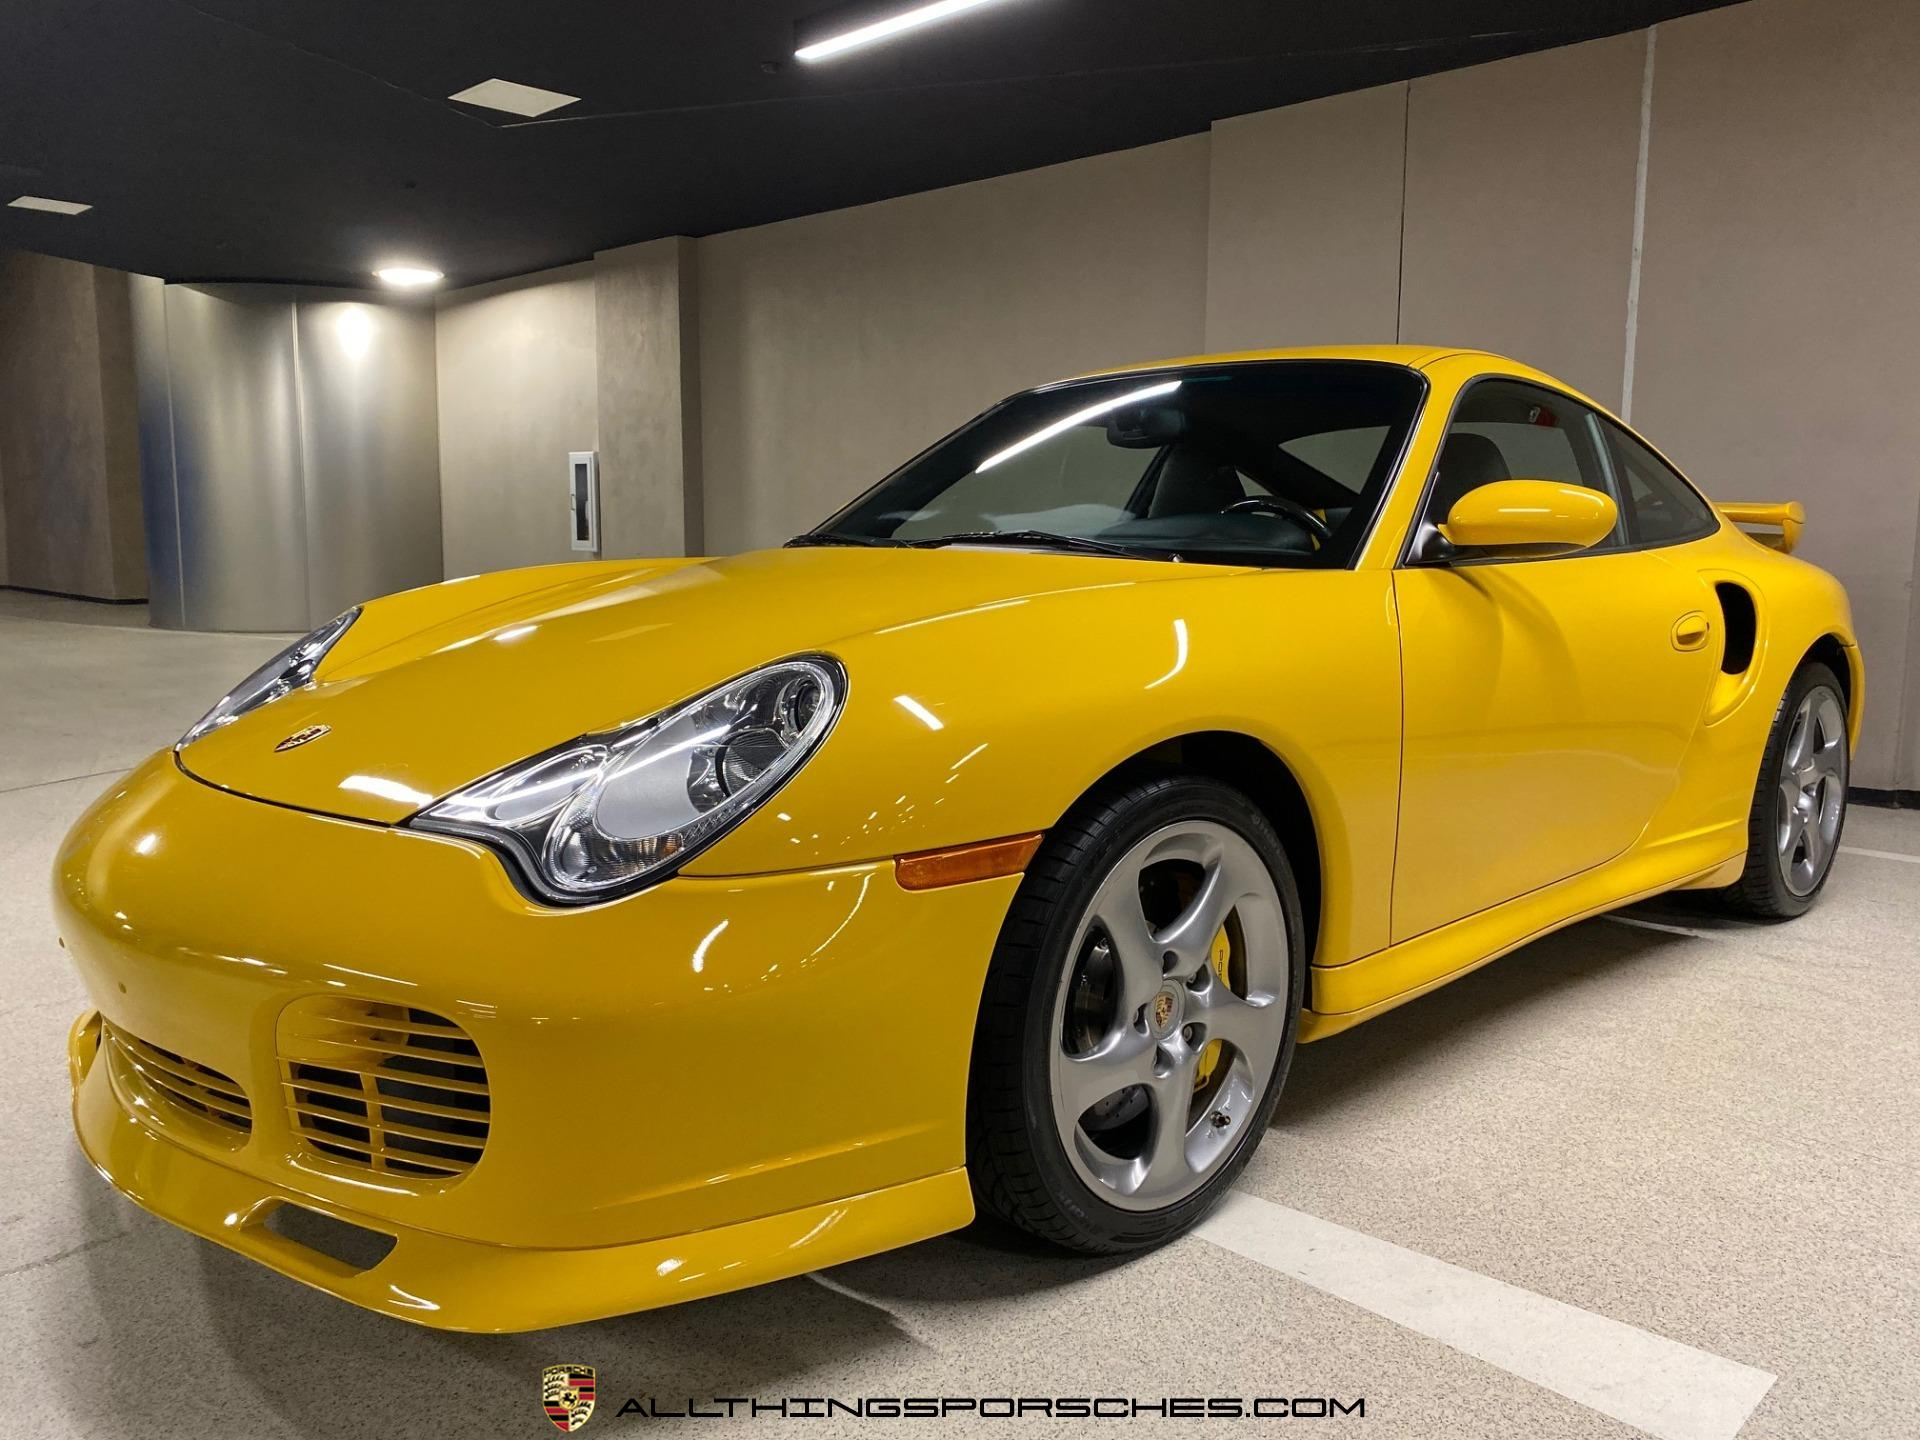 Used-2005-Porsche-911-Turbo-S-Coupe-Manual-Trans